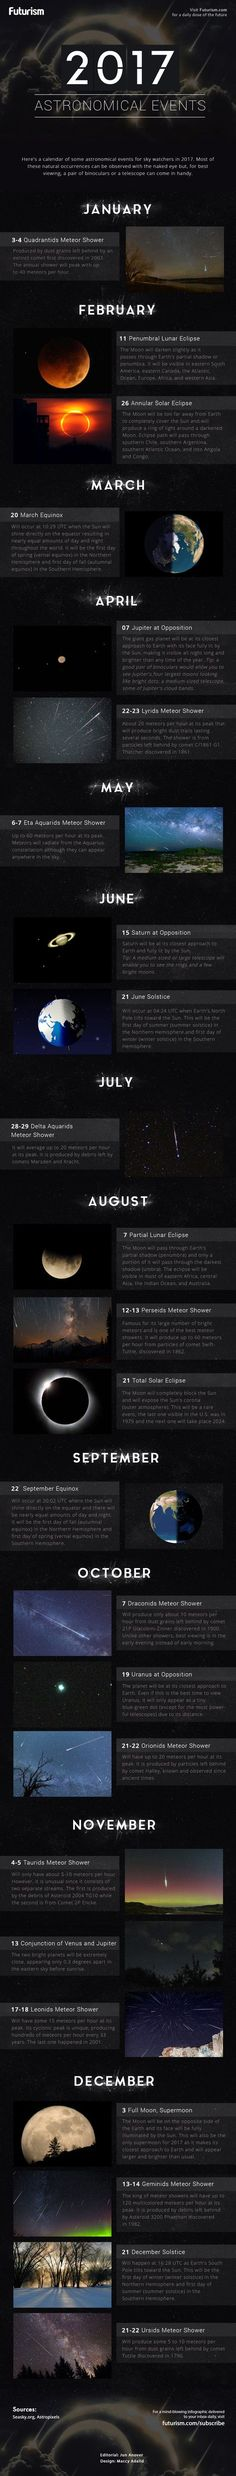 2017 Astronomical Events Check out our calendar of some of 2017's astronomical events for sky watchers. Most of these natural occurrences can be observed with the naked eye but use a pair of binoculars or a telescope for best viewing.